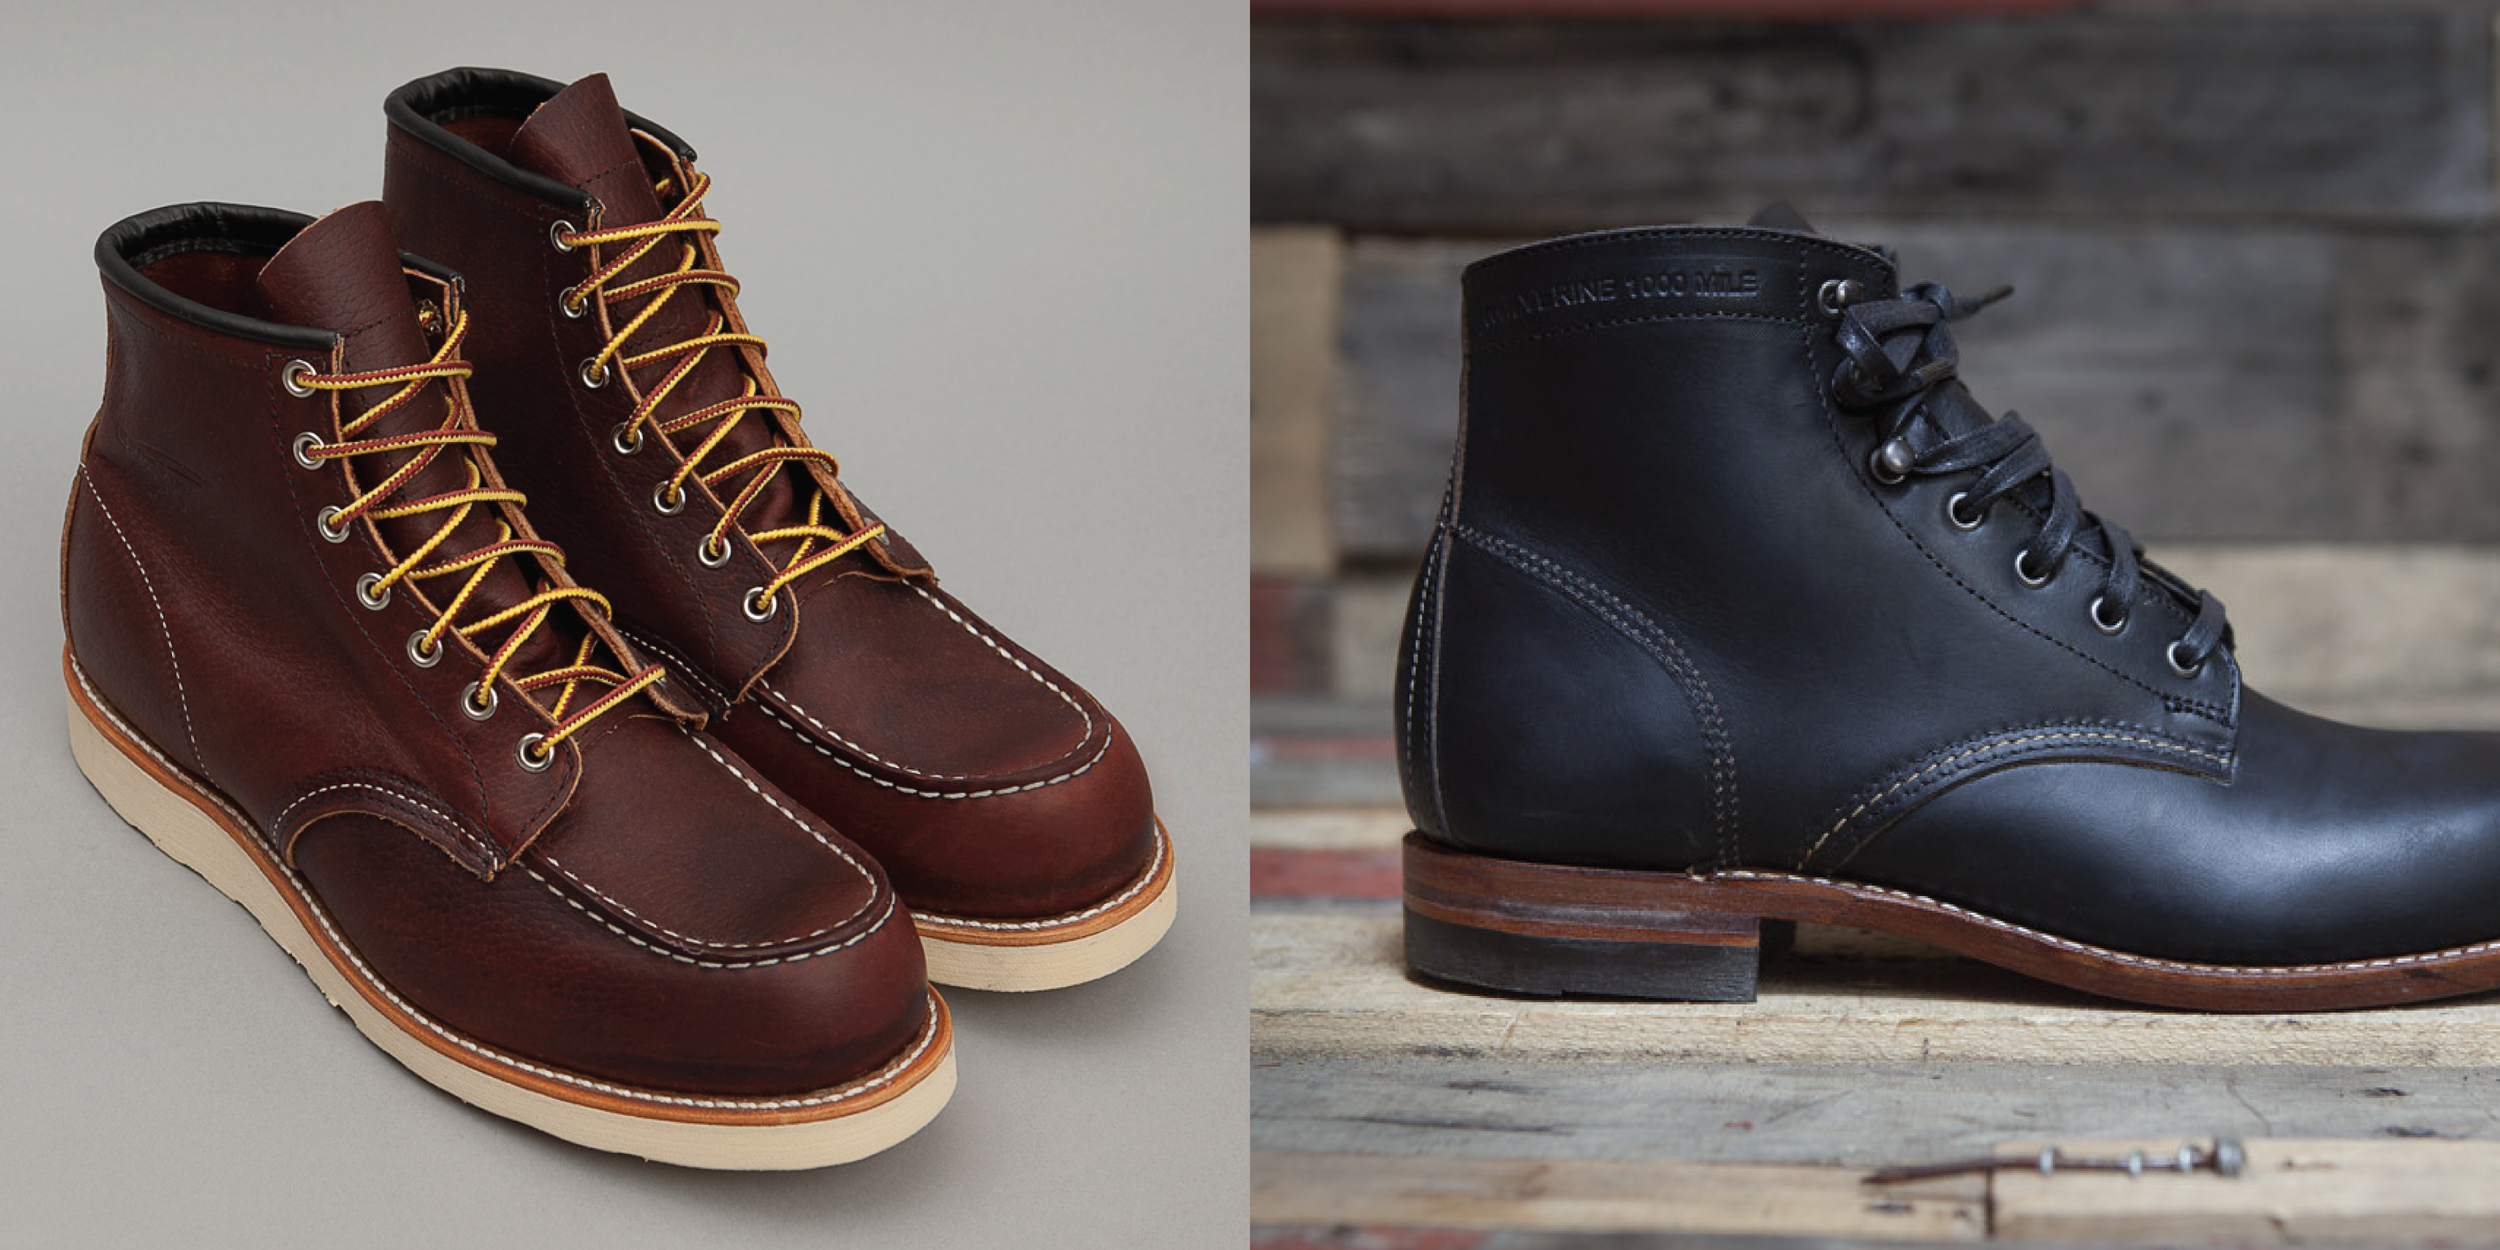 Classic boot inspiration takes the Free Chukka boot to a more rugged space with leather uppers, heavy stitching, boot laces, and metal eyelets.